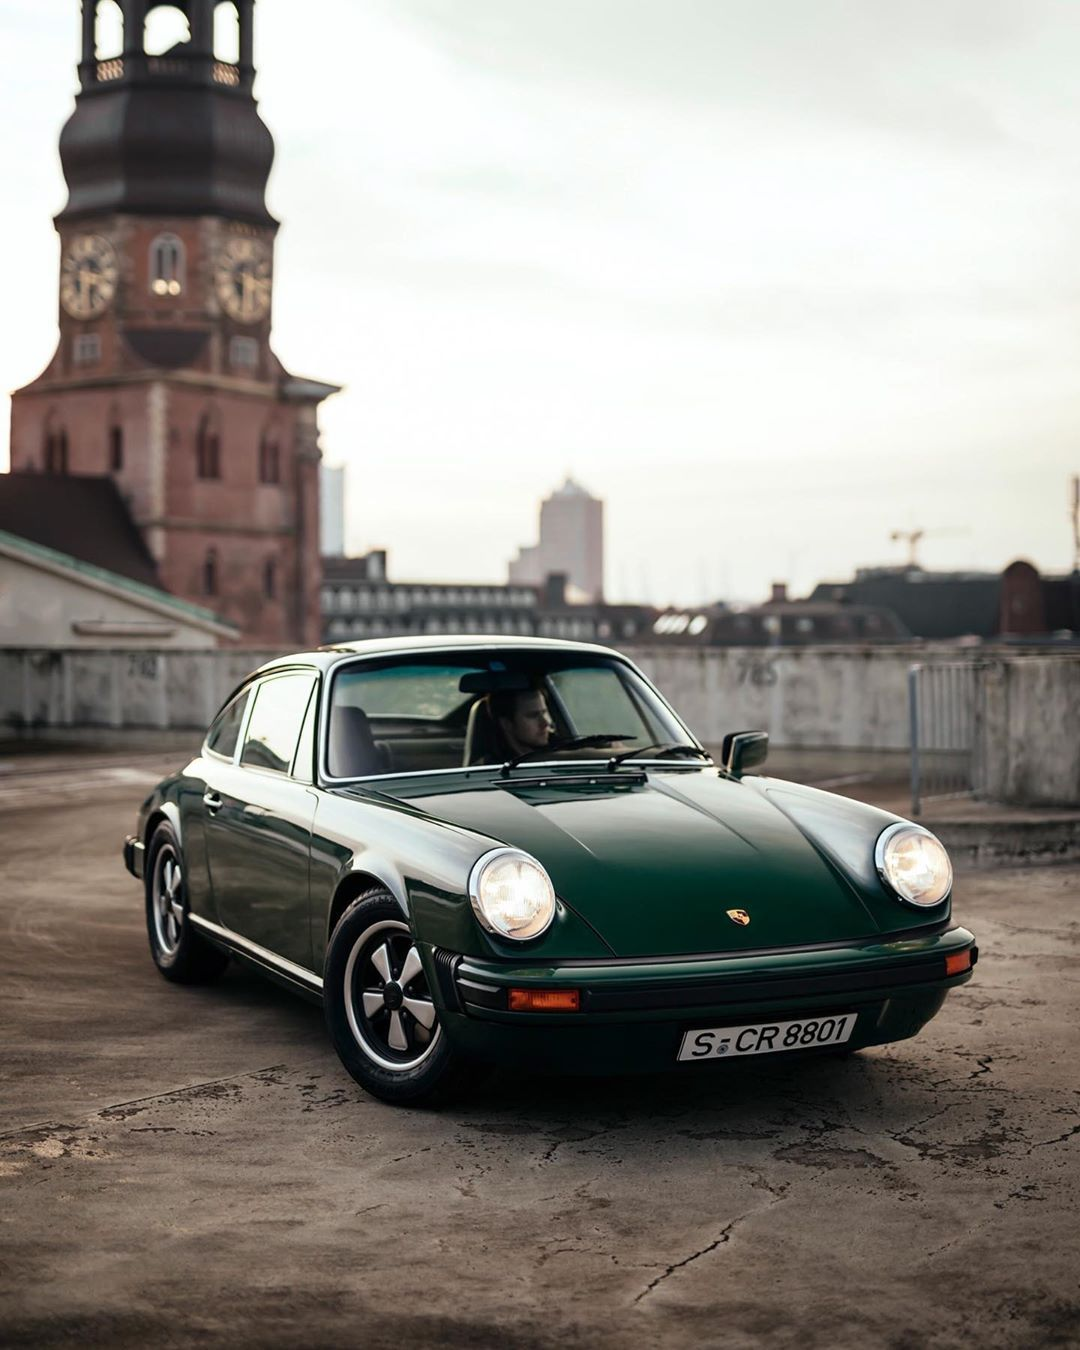 Pin By Palermo Clint On The Dr S Car Vintage Porsche Porsche Cars Classic Cars Muscle